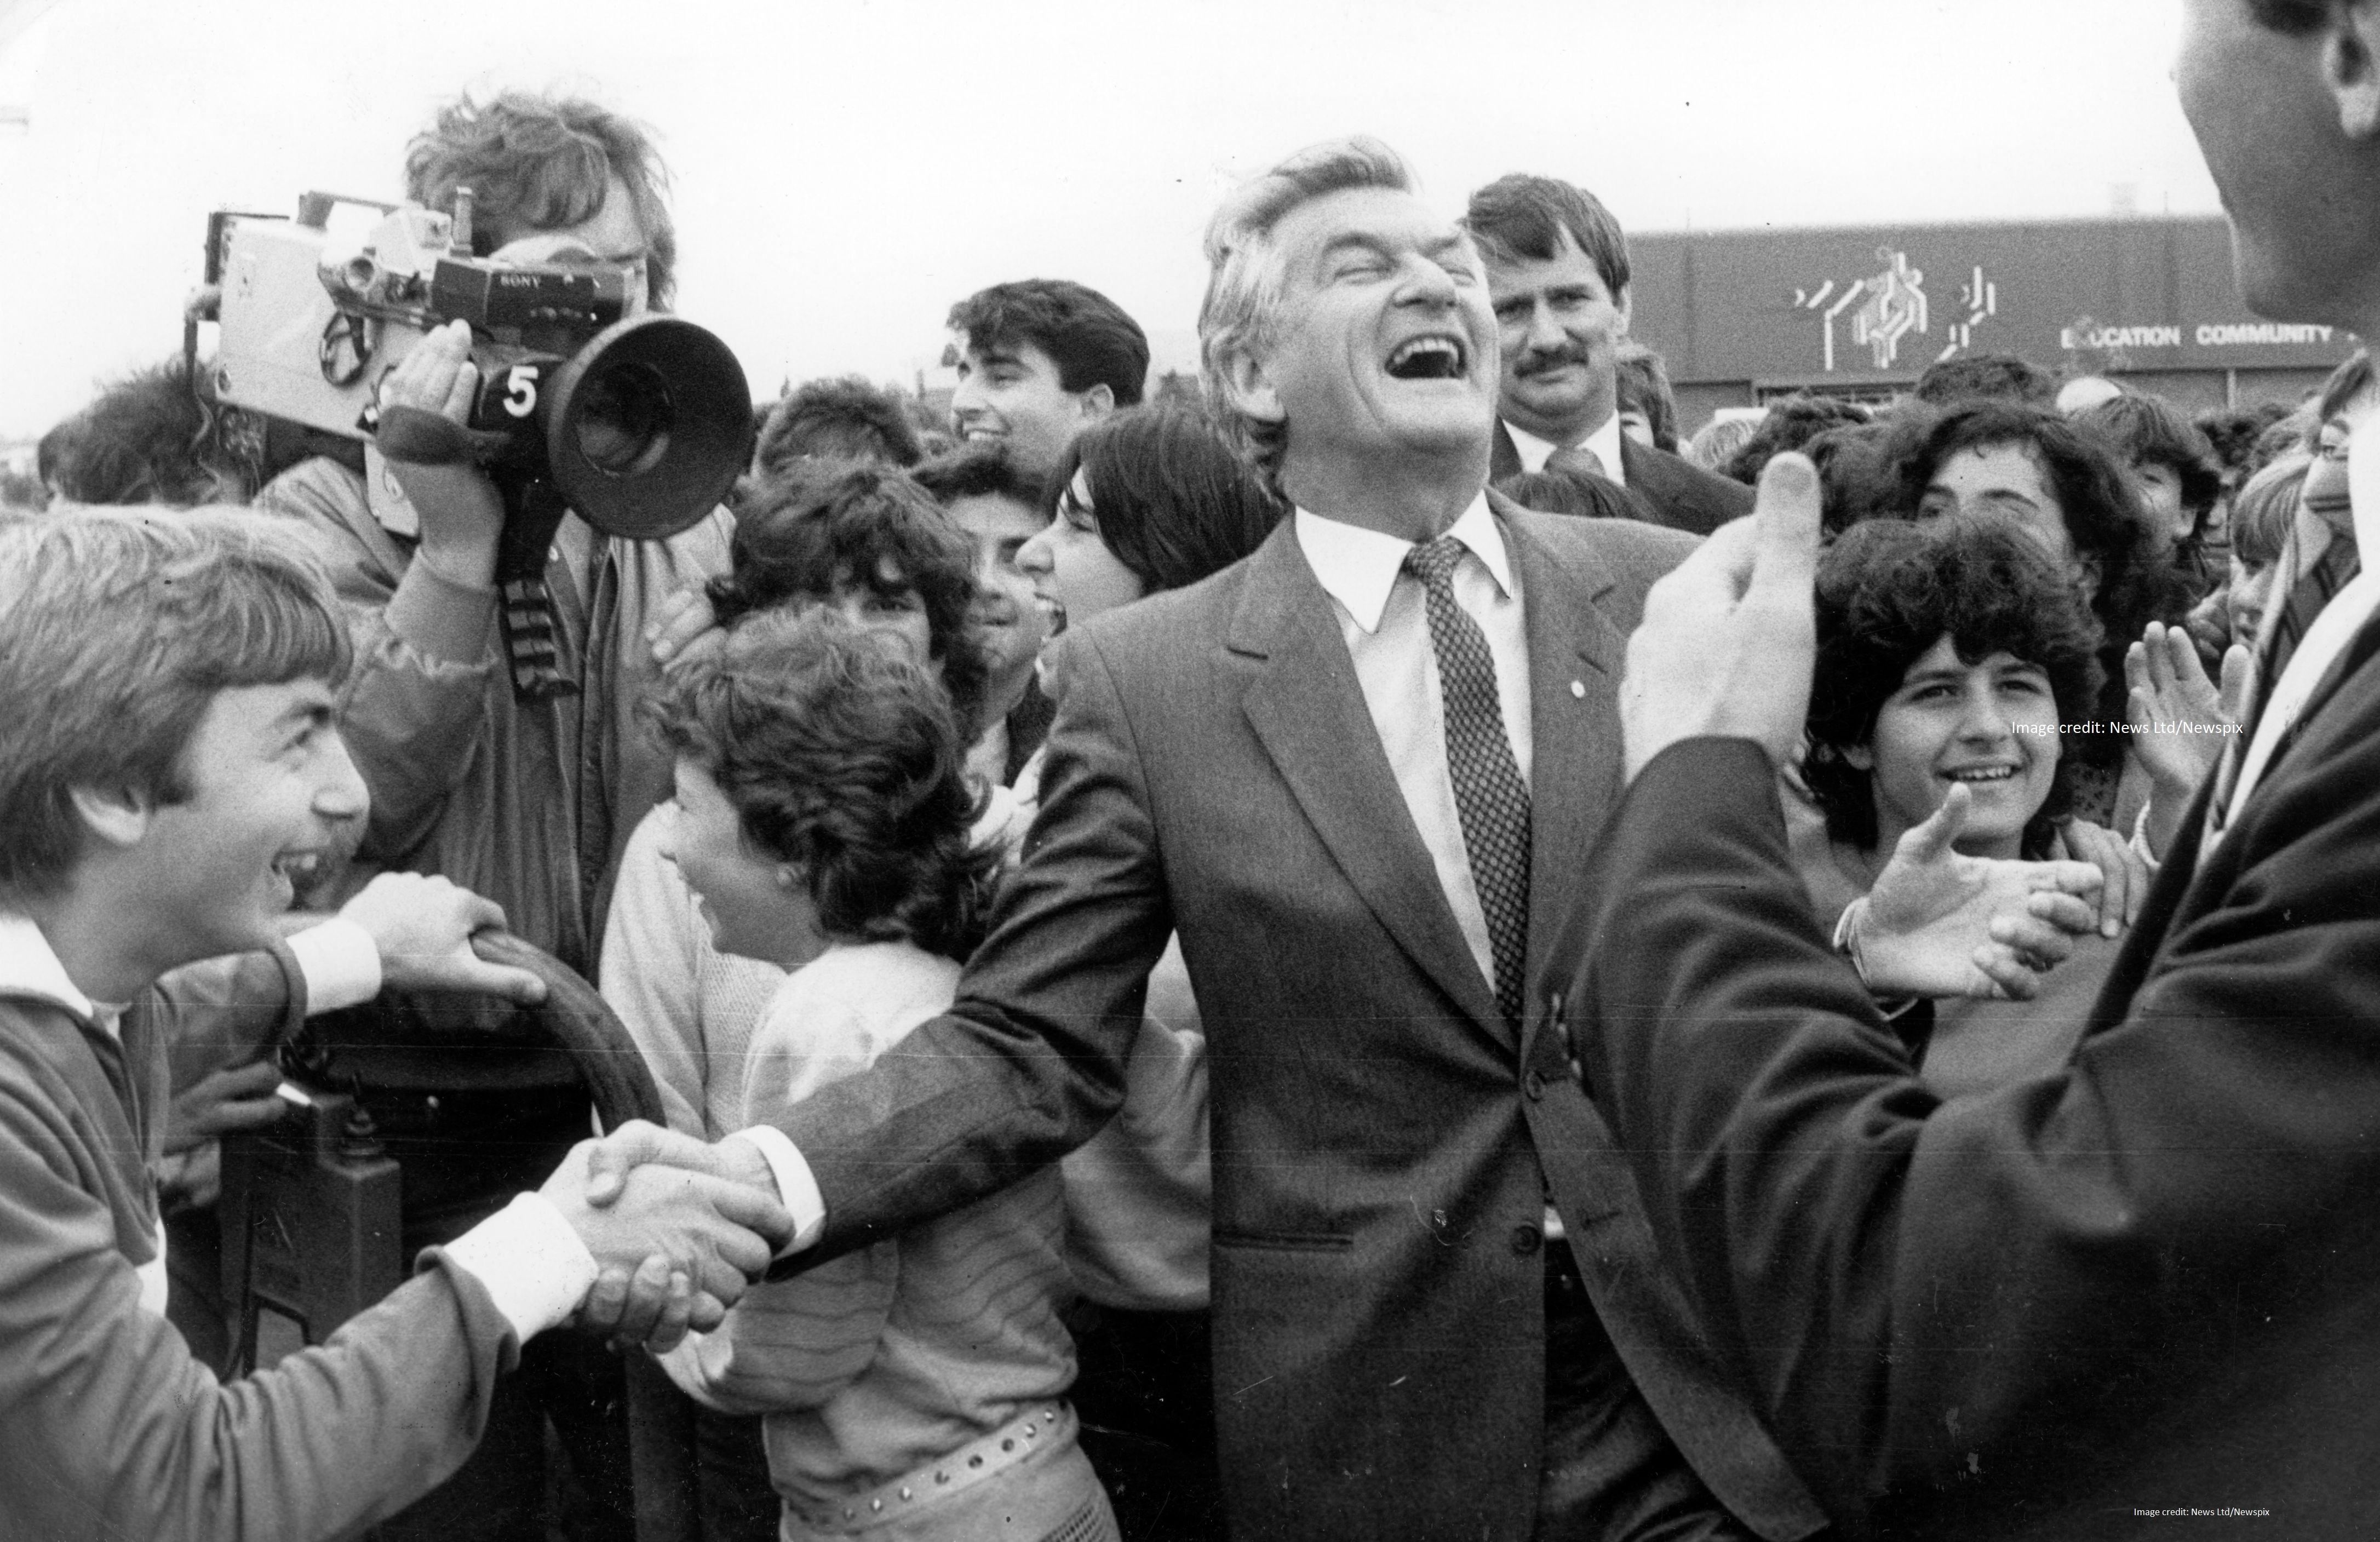 <p>Australia's 23rd Prime Minister, 1983-1991<br>Last prime minister to serve at Old Parliament House</p>